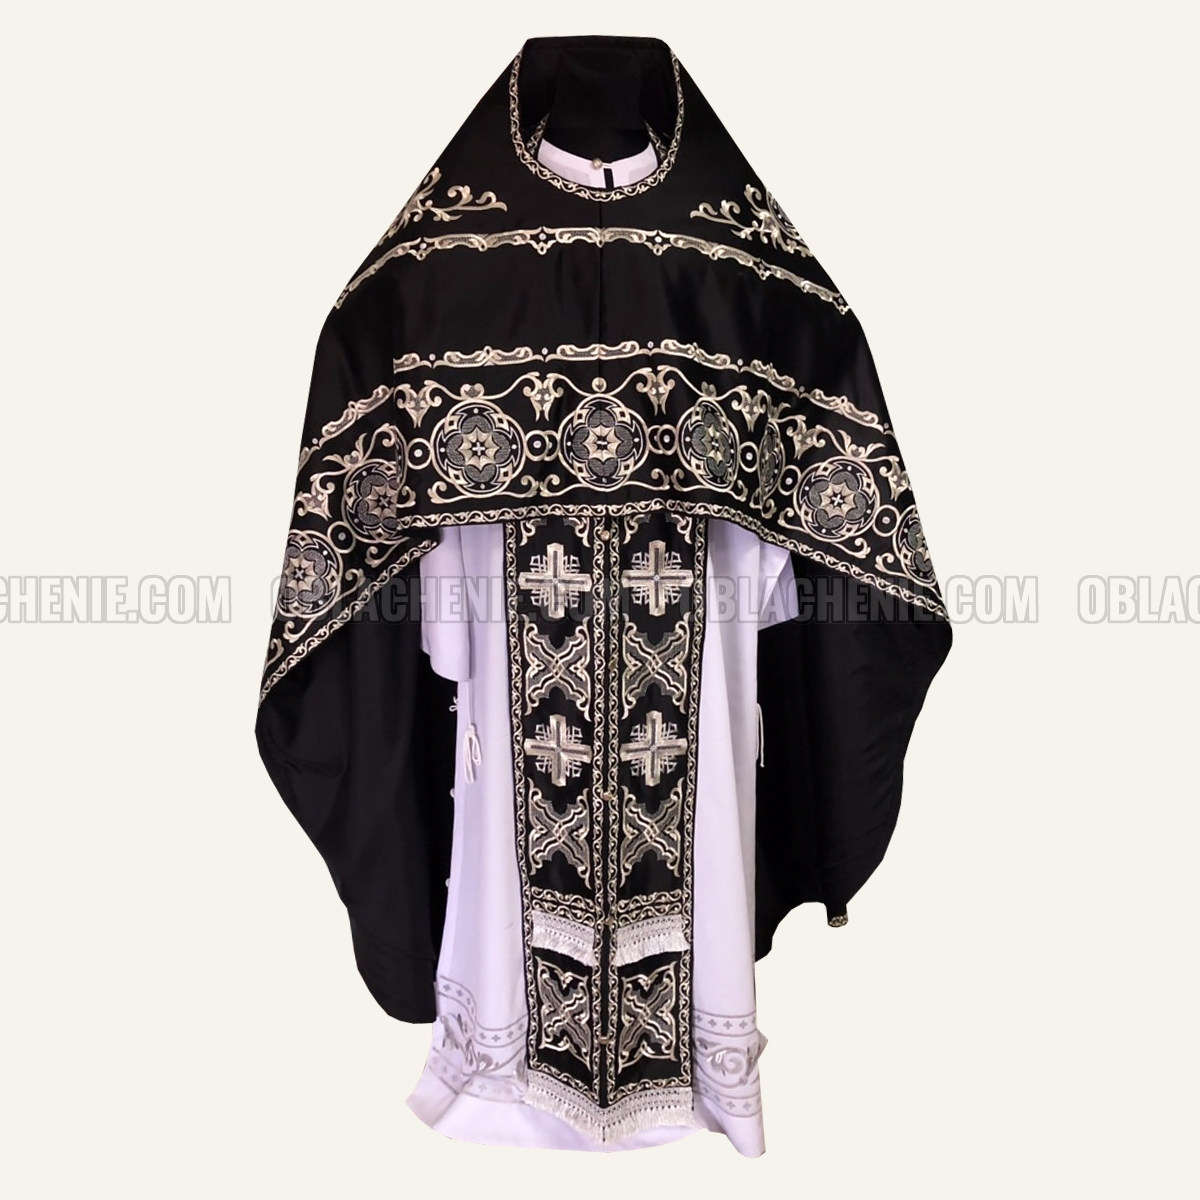 Embroidered priest's vestments 10212